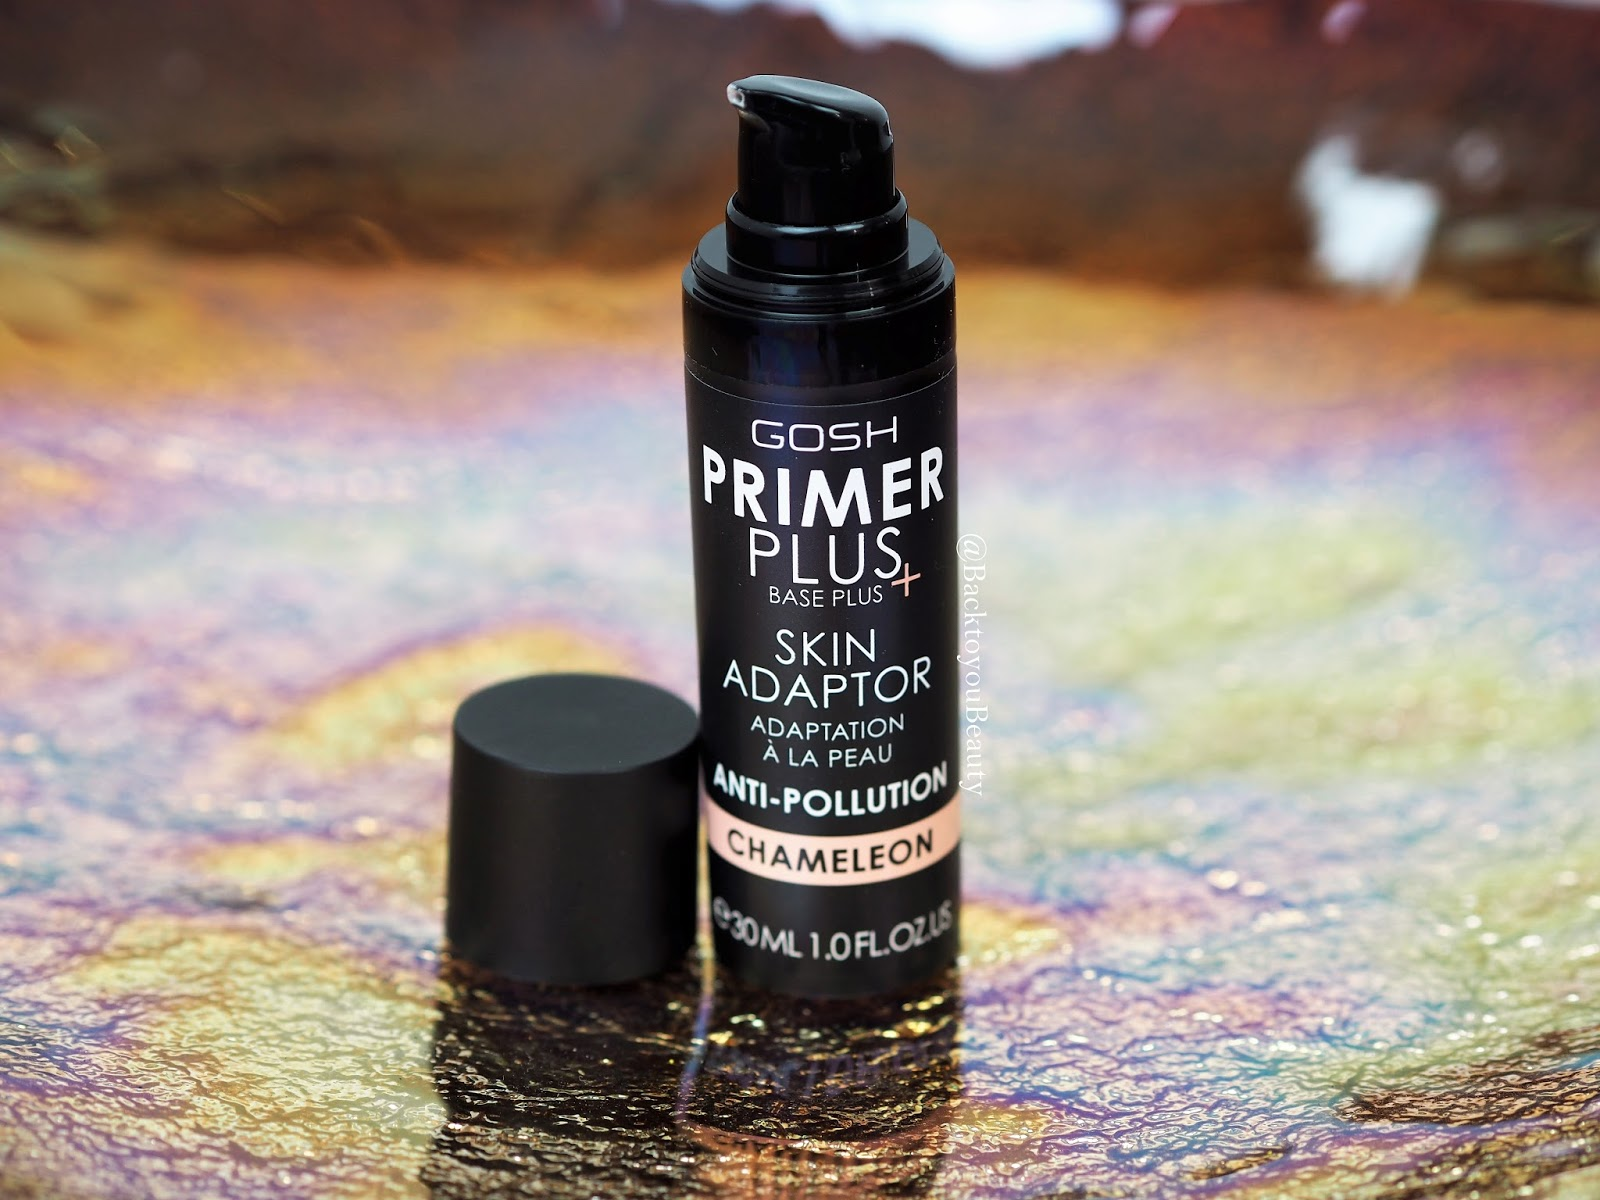 Primer Plus Skin Adaptor Anti-Pollution Chameleon